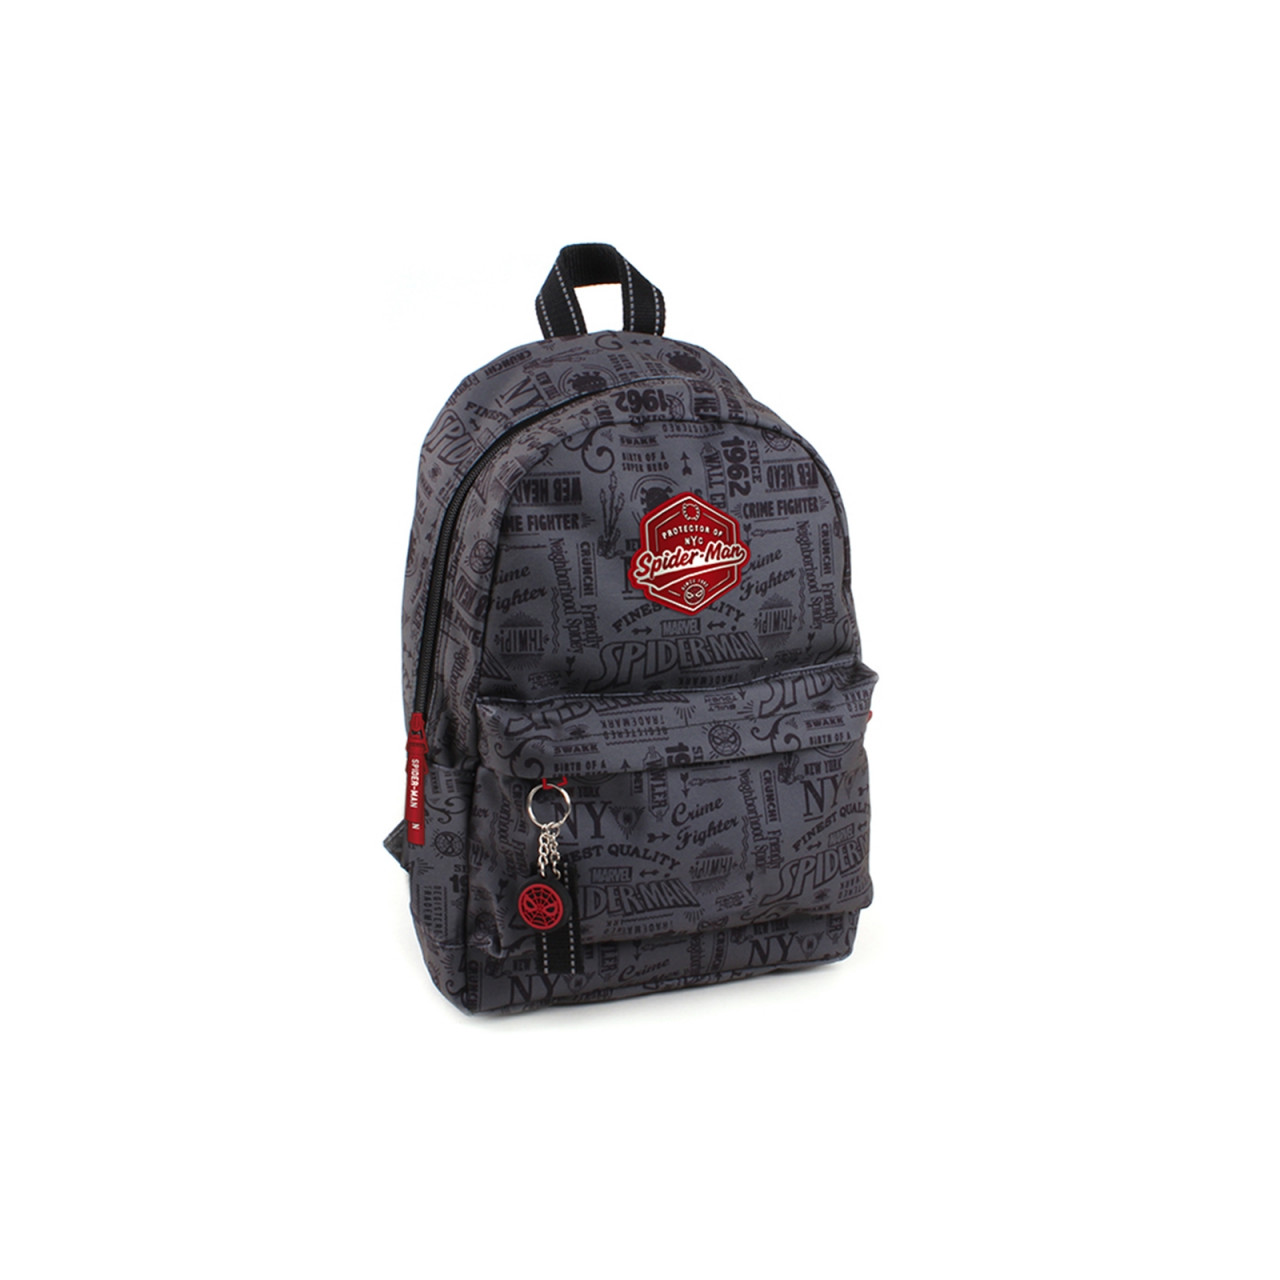 HTI-Living Spider-Man Crime Fighter Rucksack